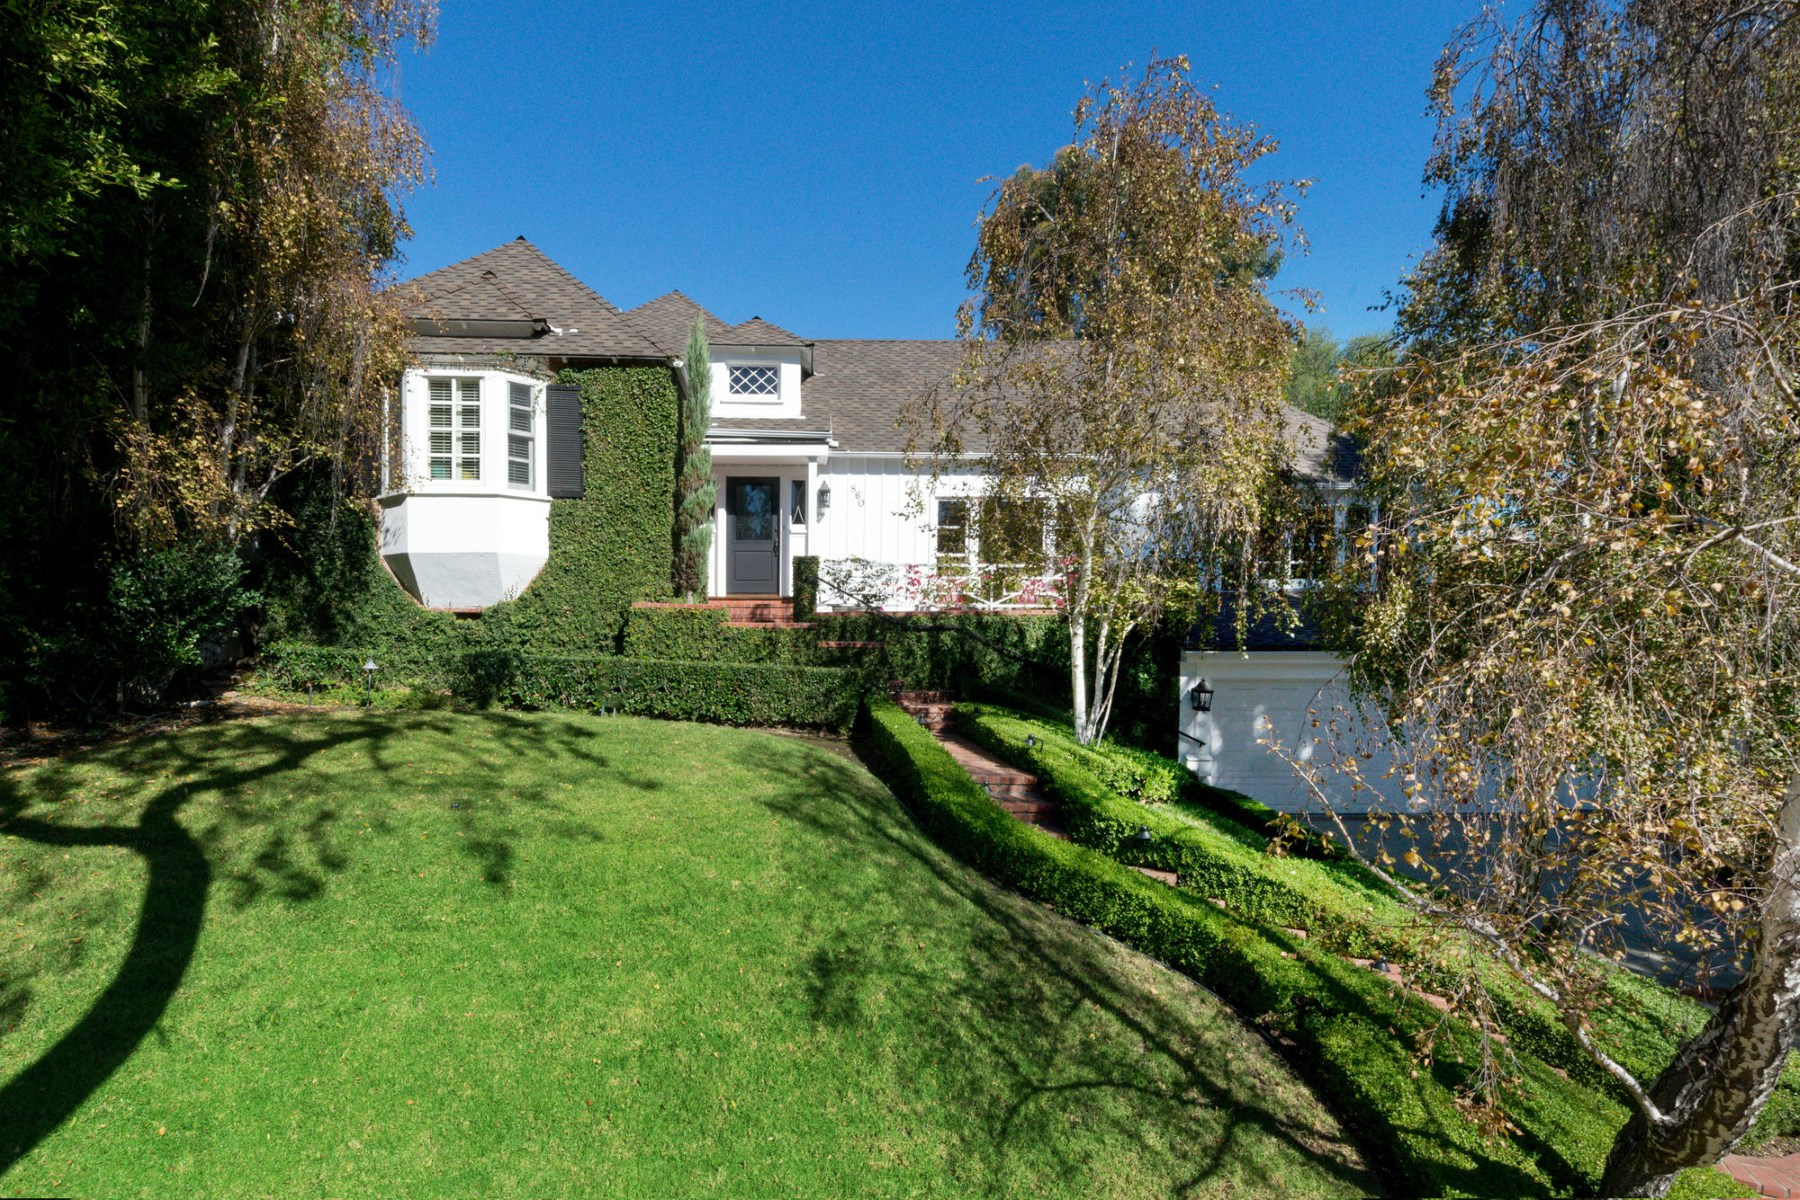 Single Family Home for Sale at Pristine Little Holmby Traditional 860 Glenmont Avenue Los Angeles, California, 90024 United States